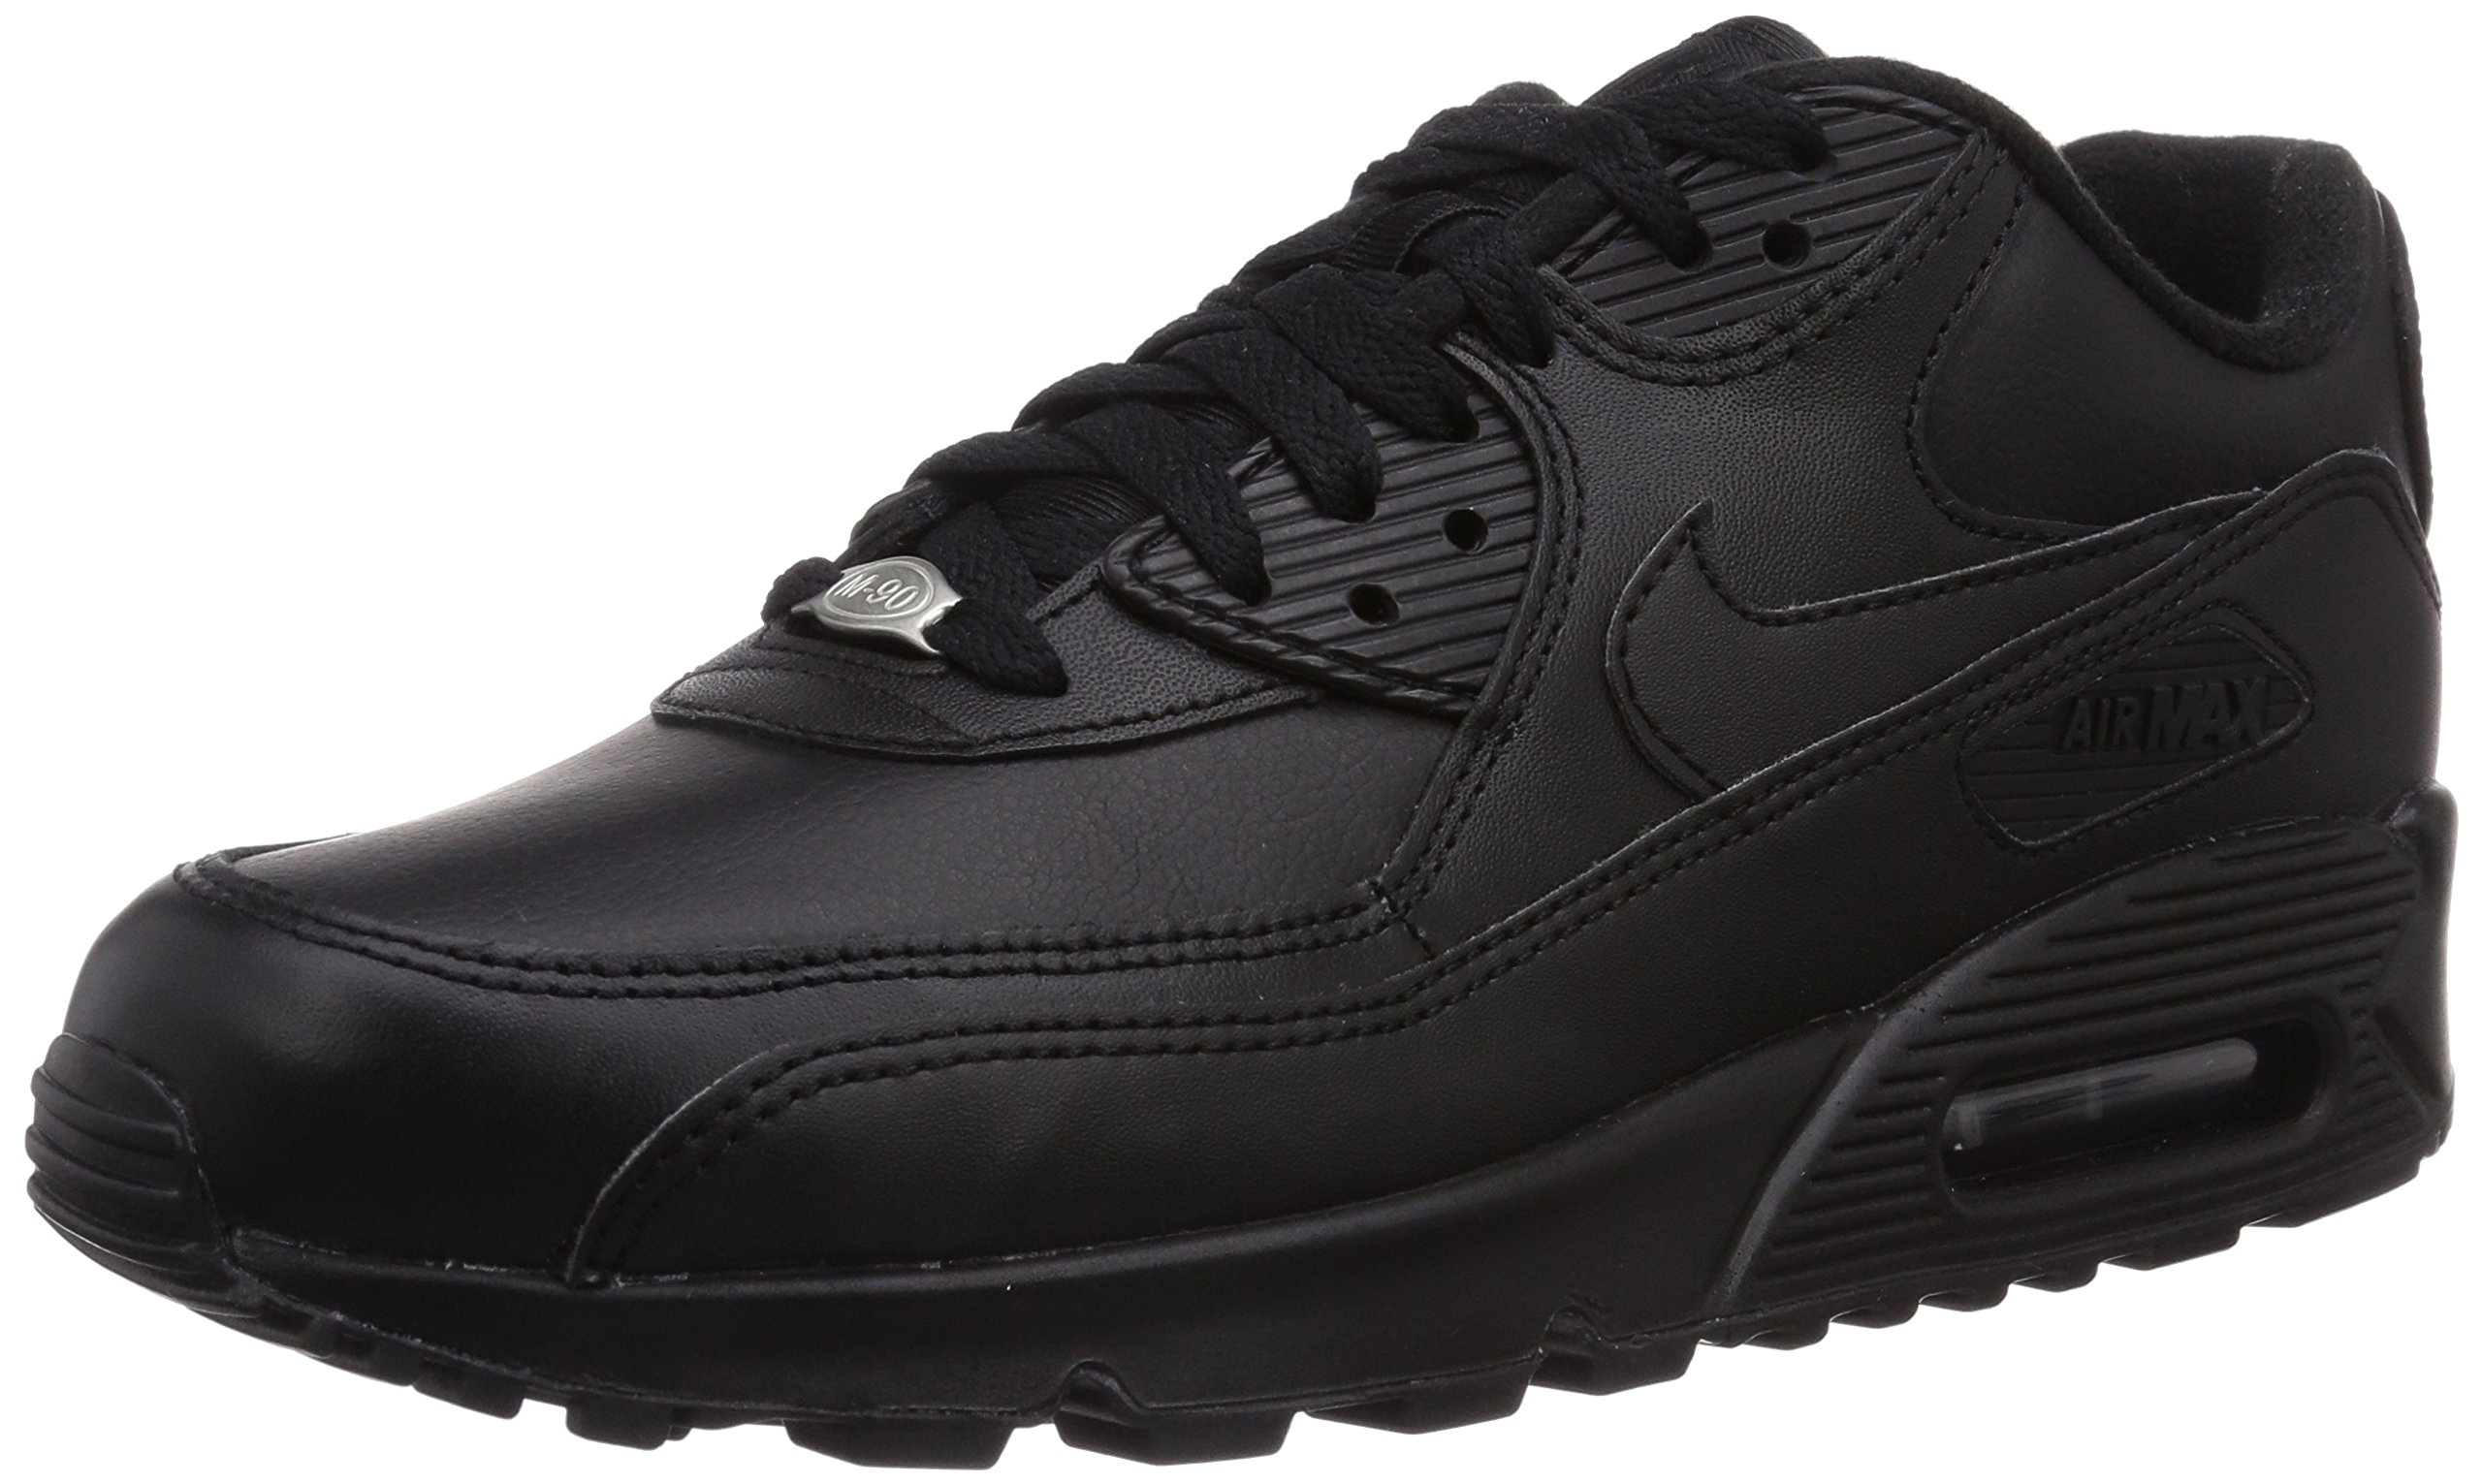 a4af03147d64 Galleon - Nike Mens Air Max 90 Leather Running Shoes Black Black 302519-001  Size 12.5